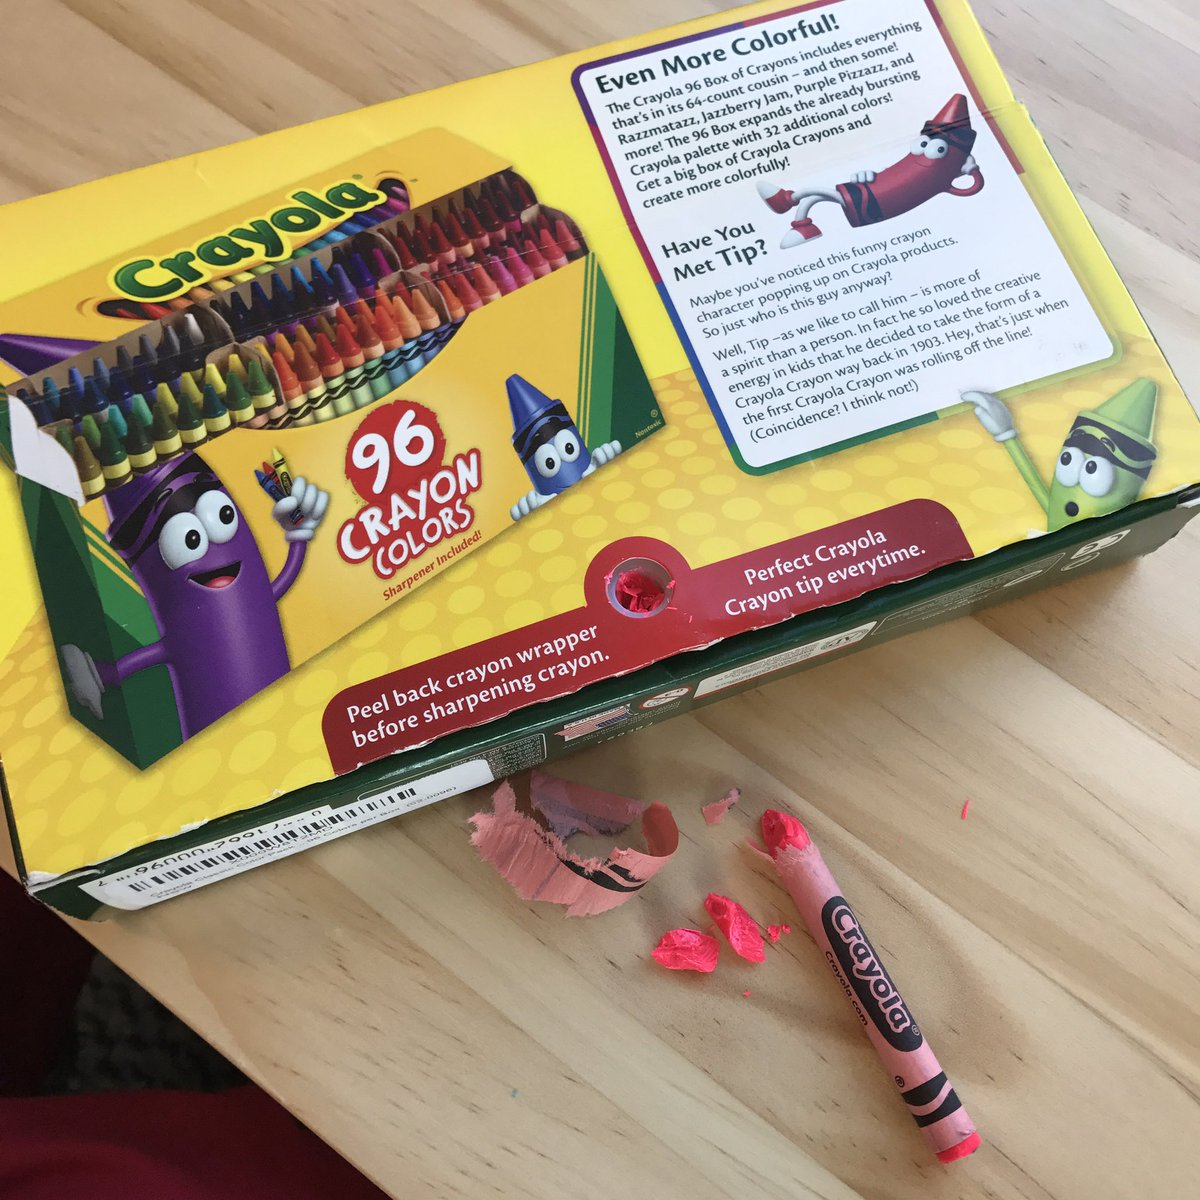 crayola on twitter we can fix this dm us w the product style